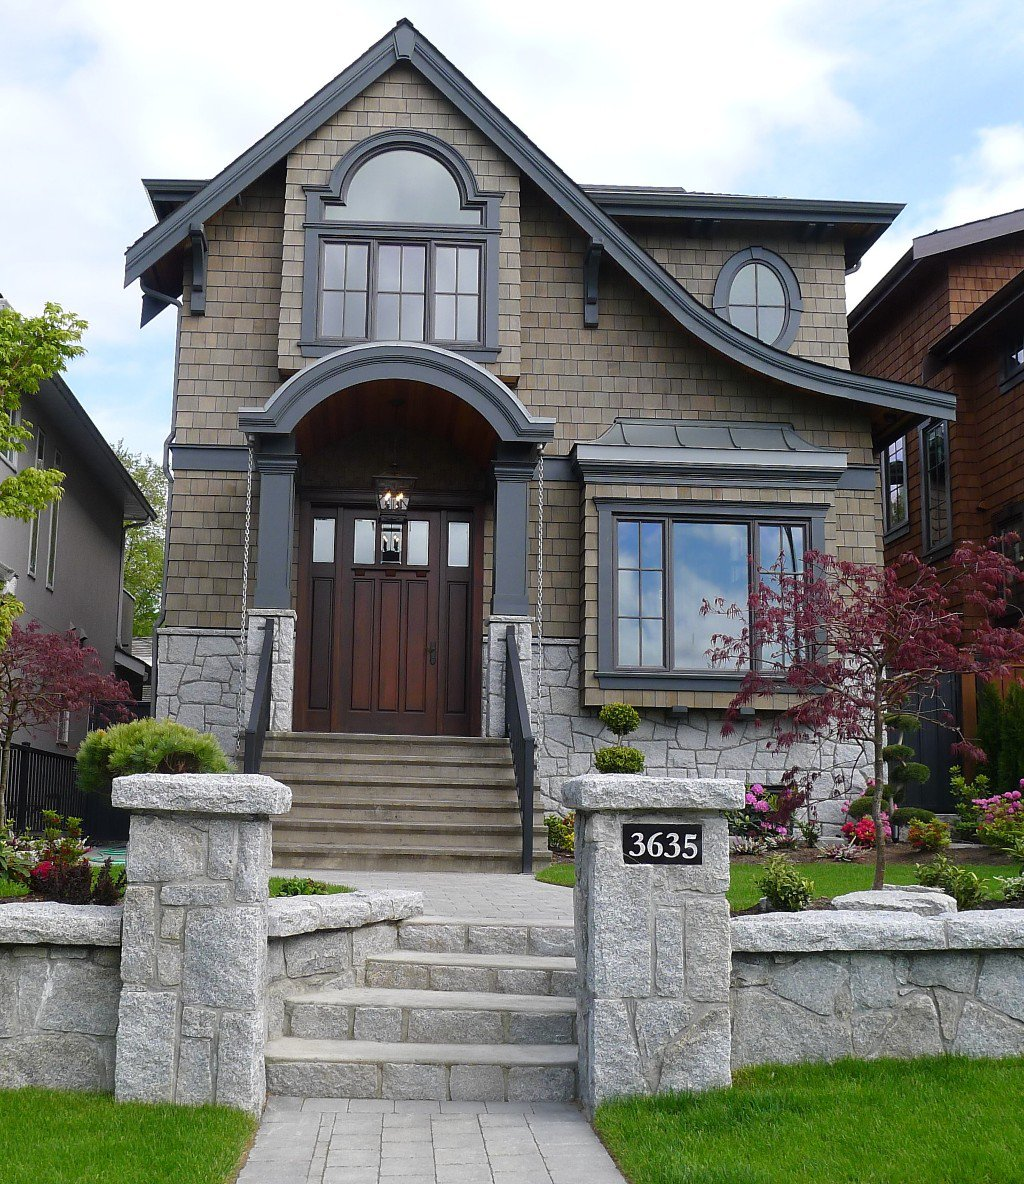 Main Photo: 3635 W 30TH AV in Vancouver: Dunbar House for sale (Vancouver West)  : MLS®# V1005493